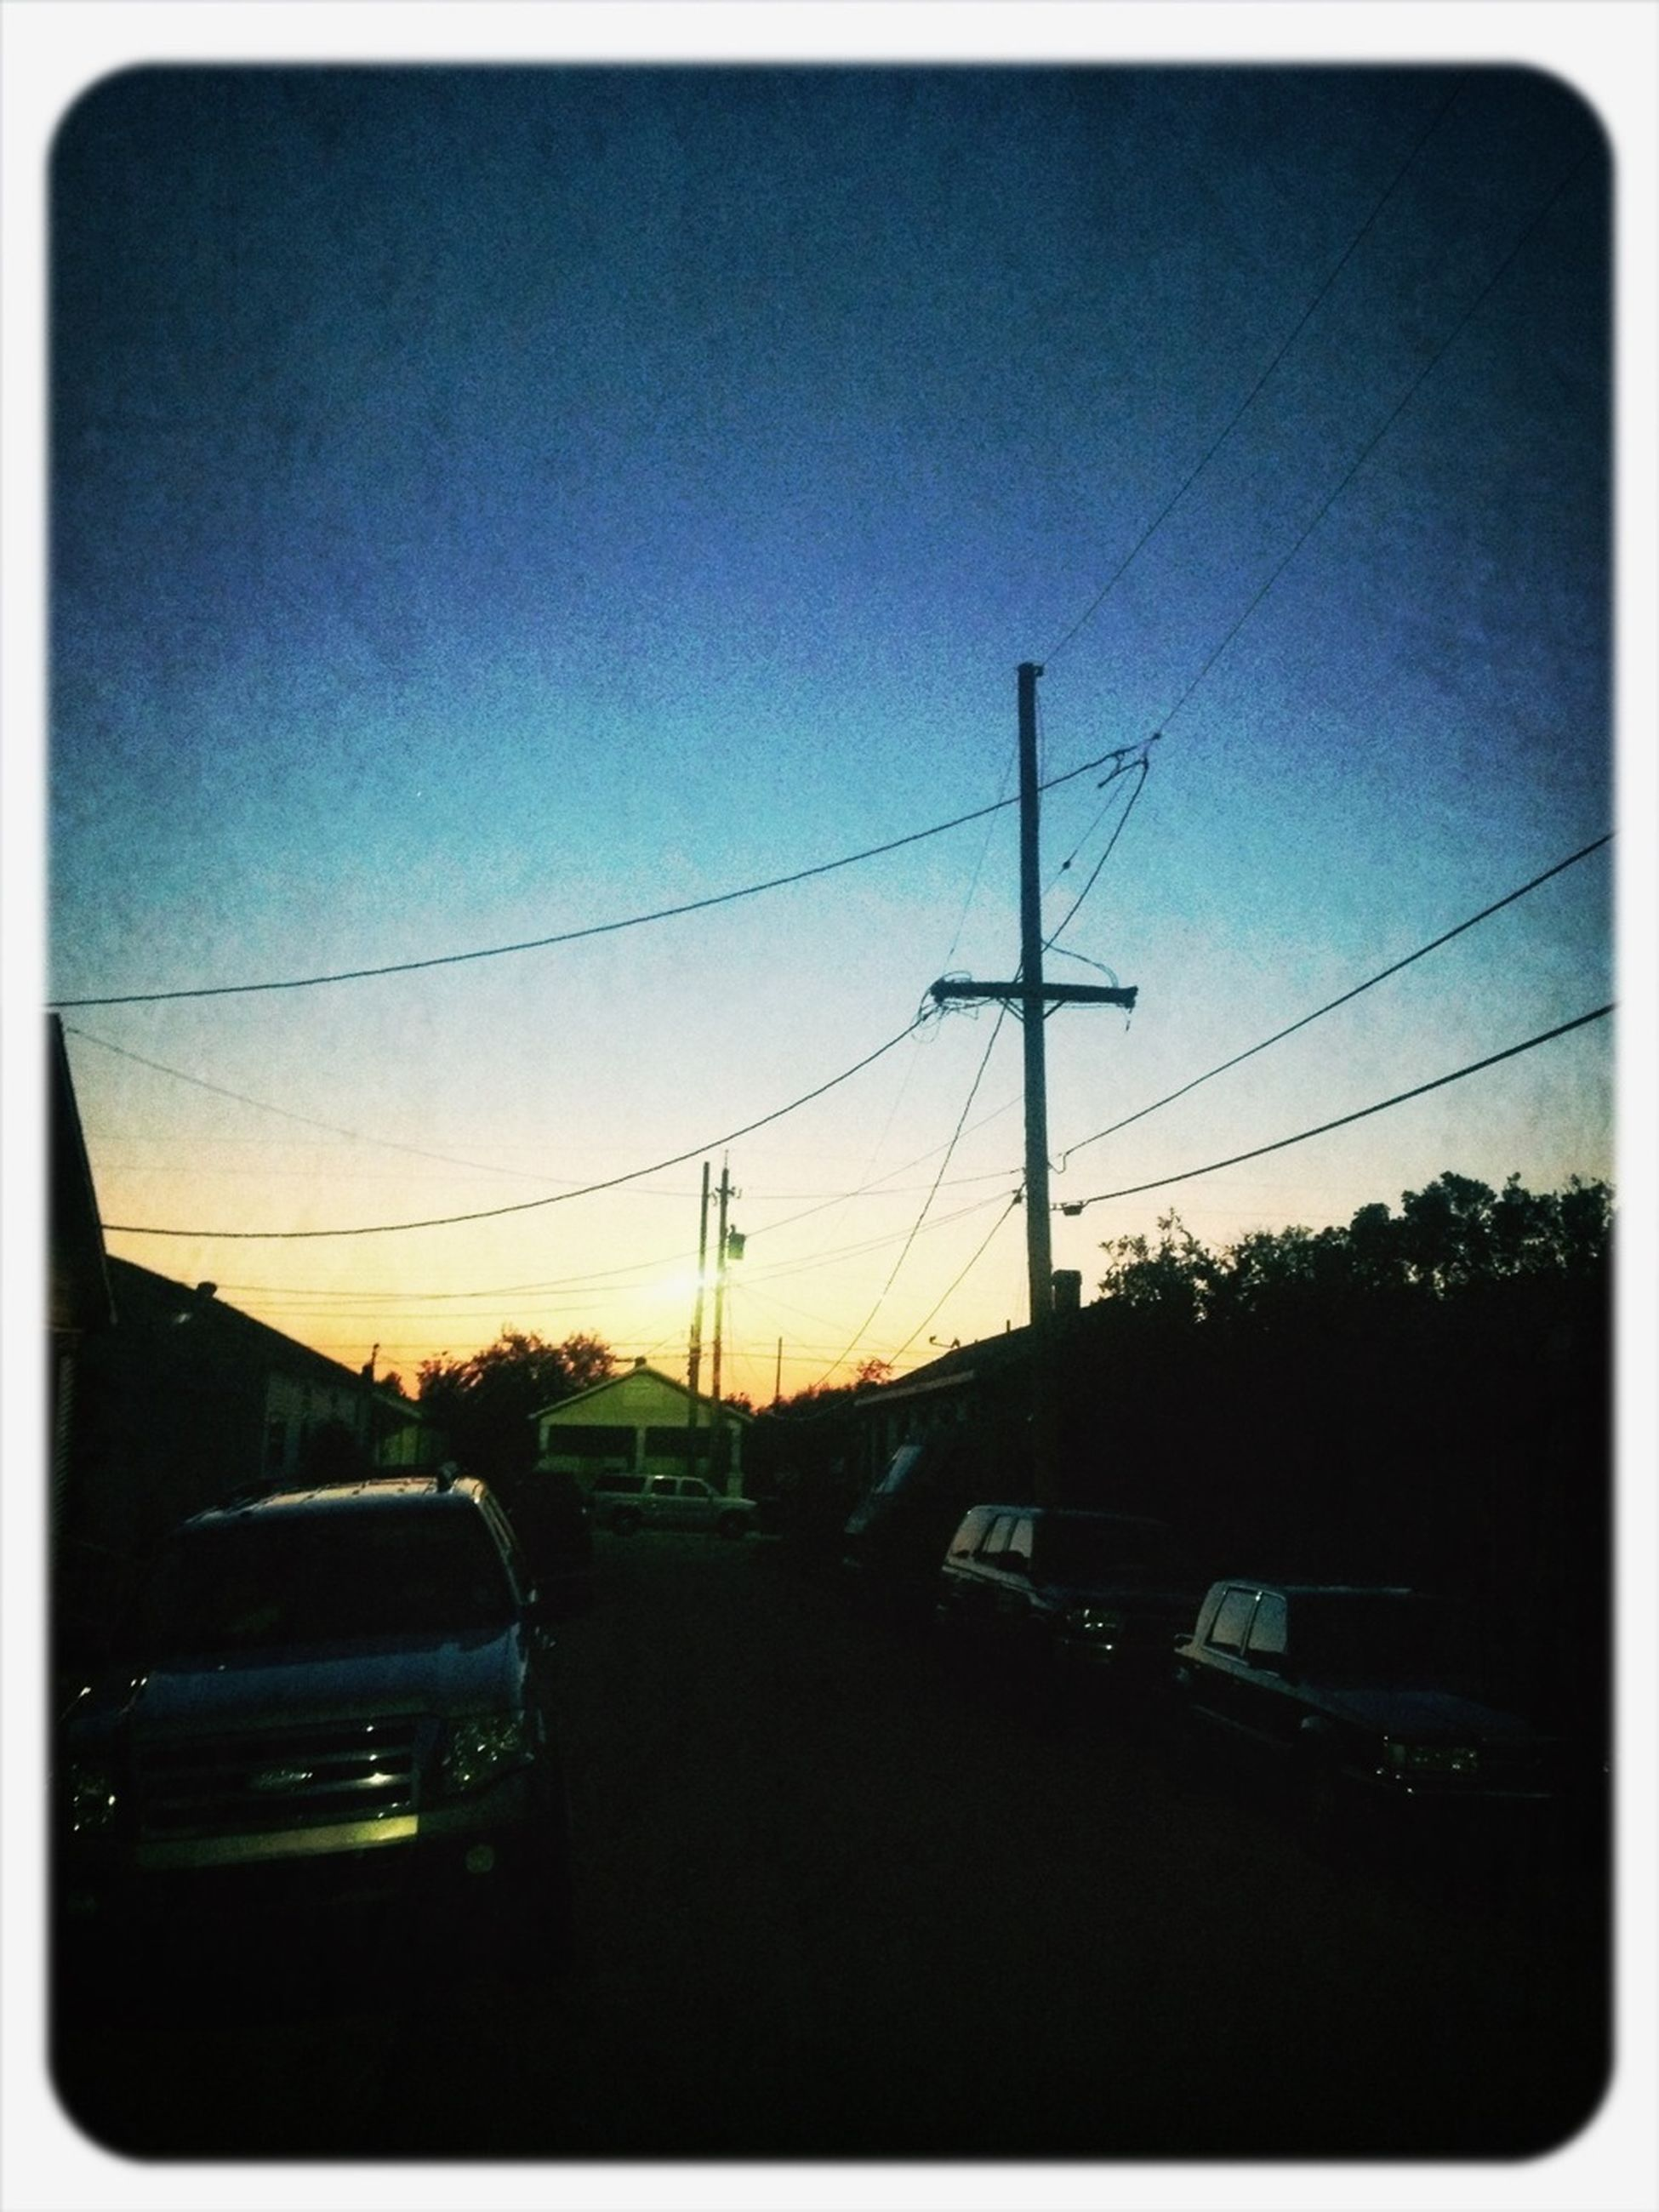 transportation, car, land vehicle, mode of transport, transfer print, sunset, road, sky, street, auto post production filter, silhouette, street light, power line, travel, on the move, electricity pylon, traffic, vehicle interior, clear sky, windshield